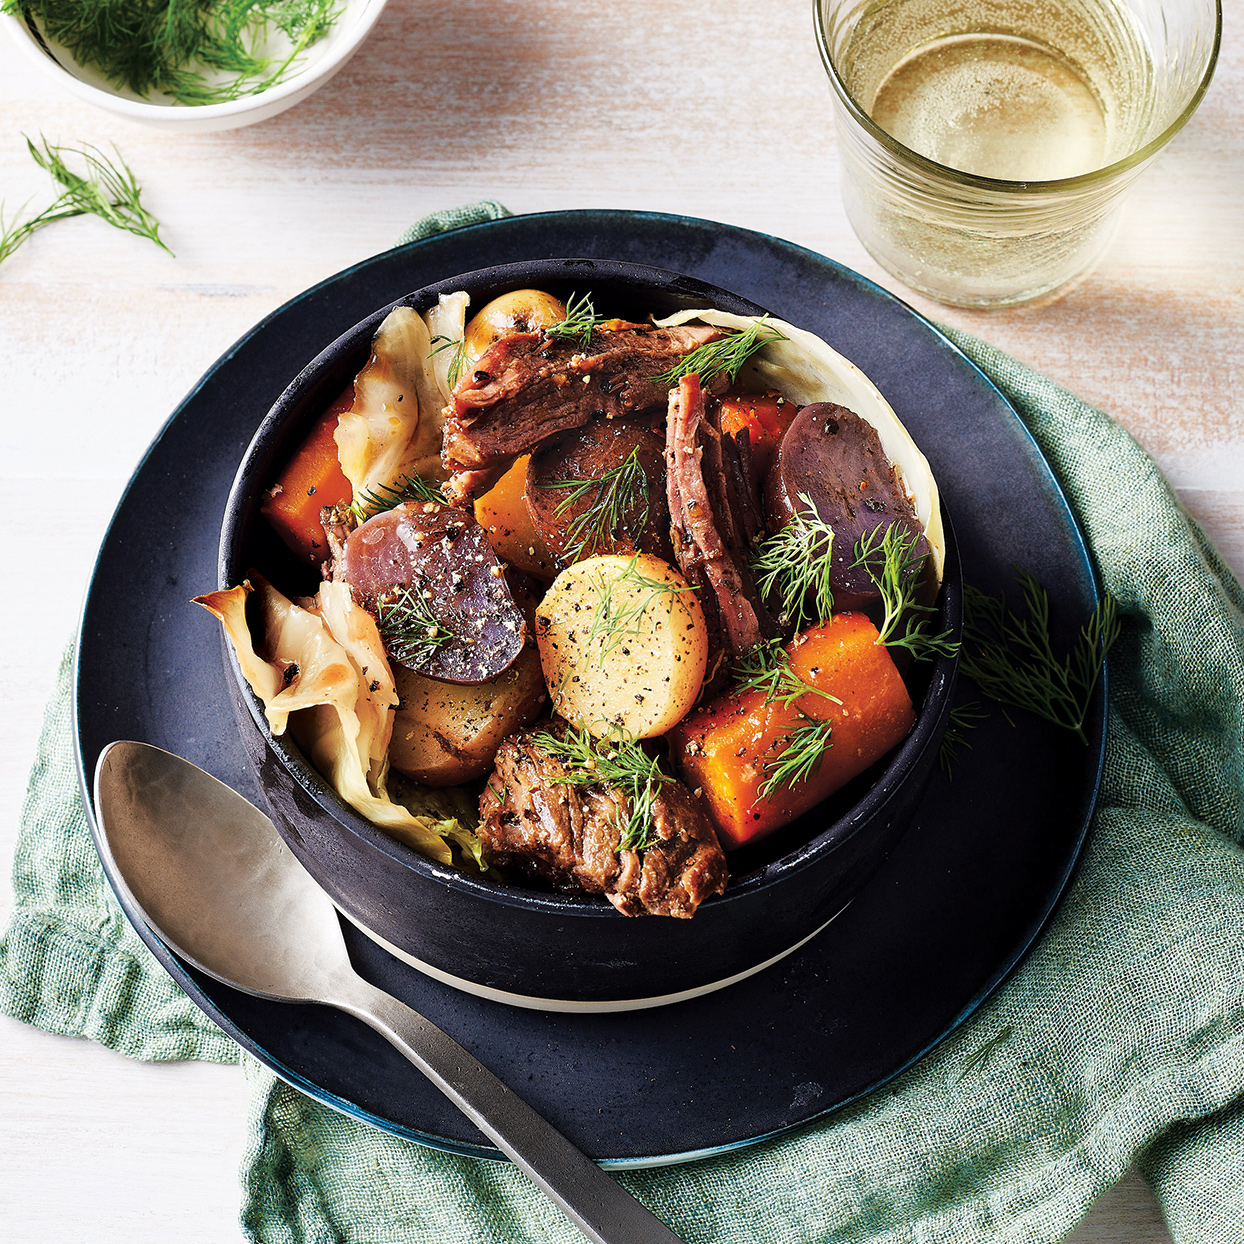 This slow-cooker chuck roast is winter comfort food at its finest. A bright, slightly sweet sauce balances the rich and tender braised beef. You can substitute multi-colored baby potatoes (halved) for the Yukon variety and fresh fennel fronds for the parsley, if desired.